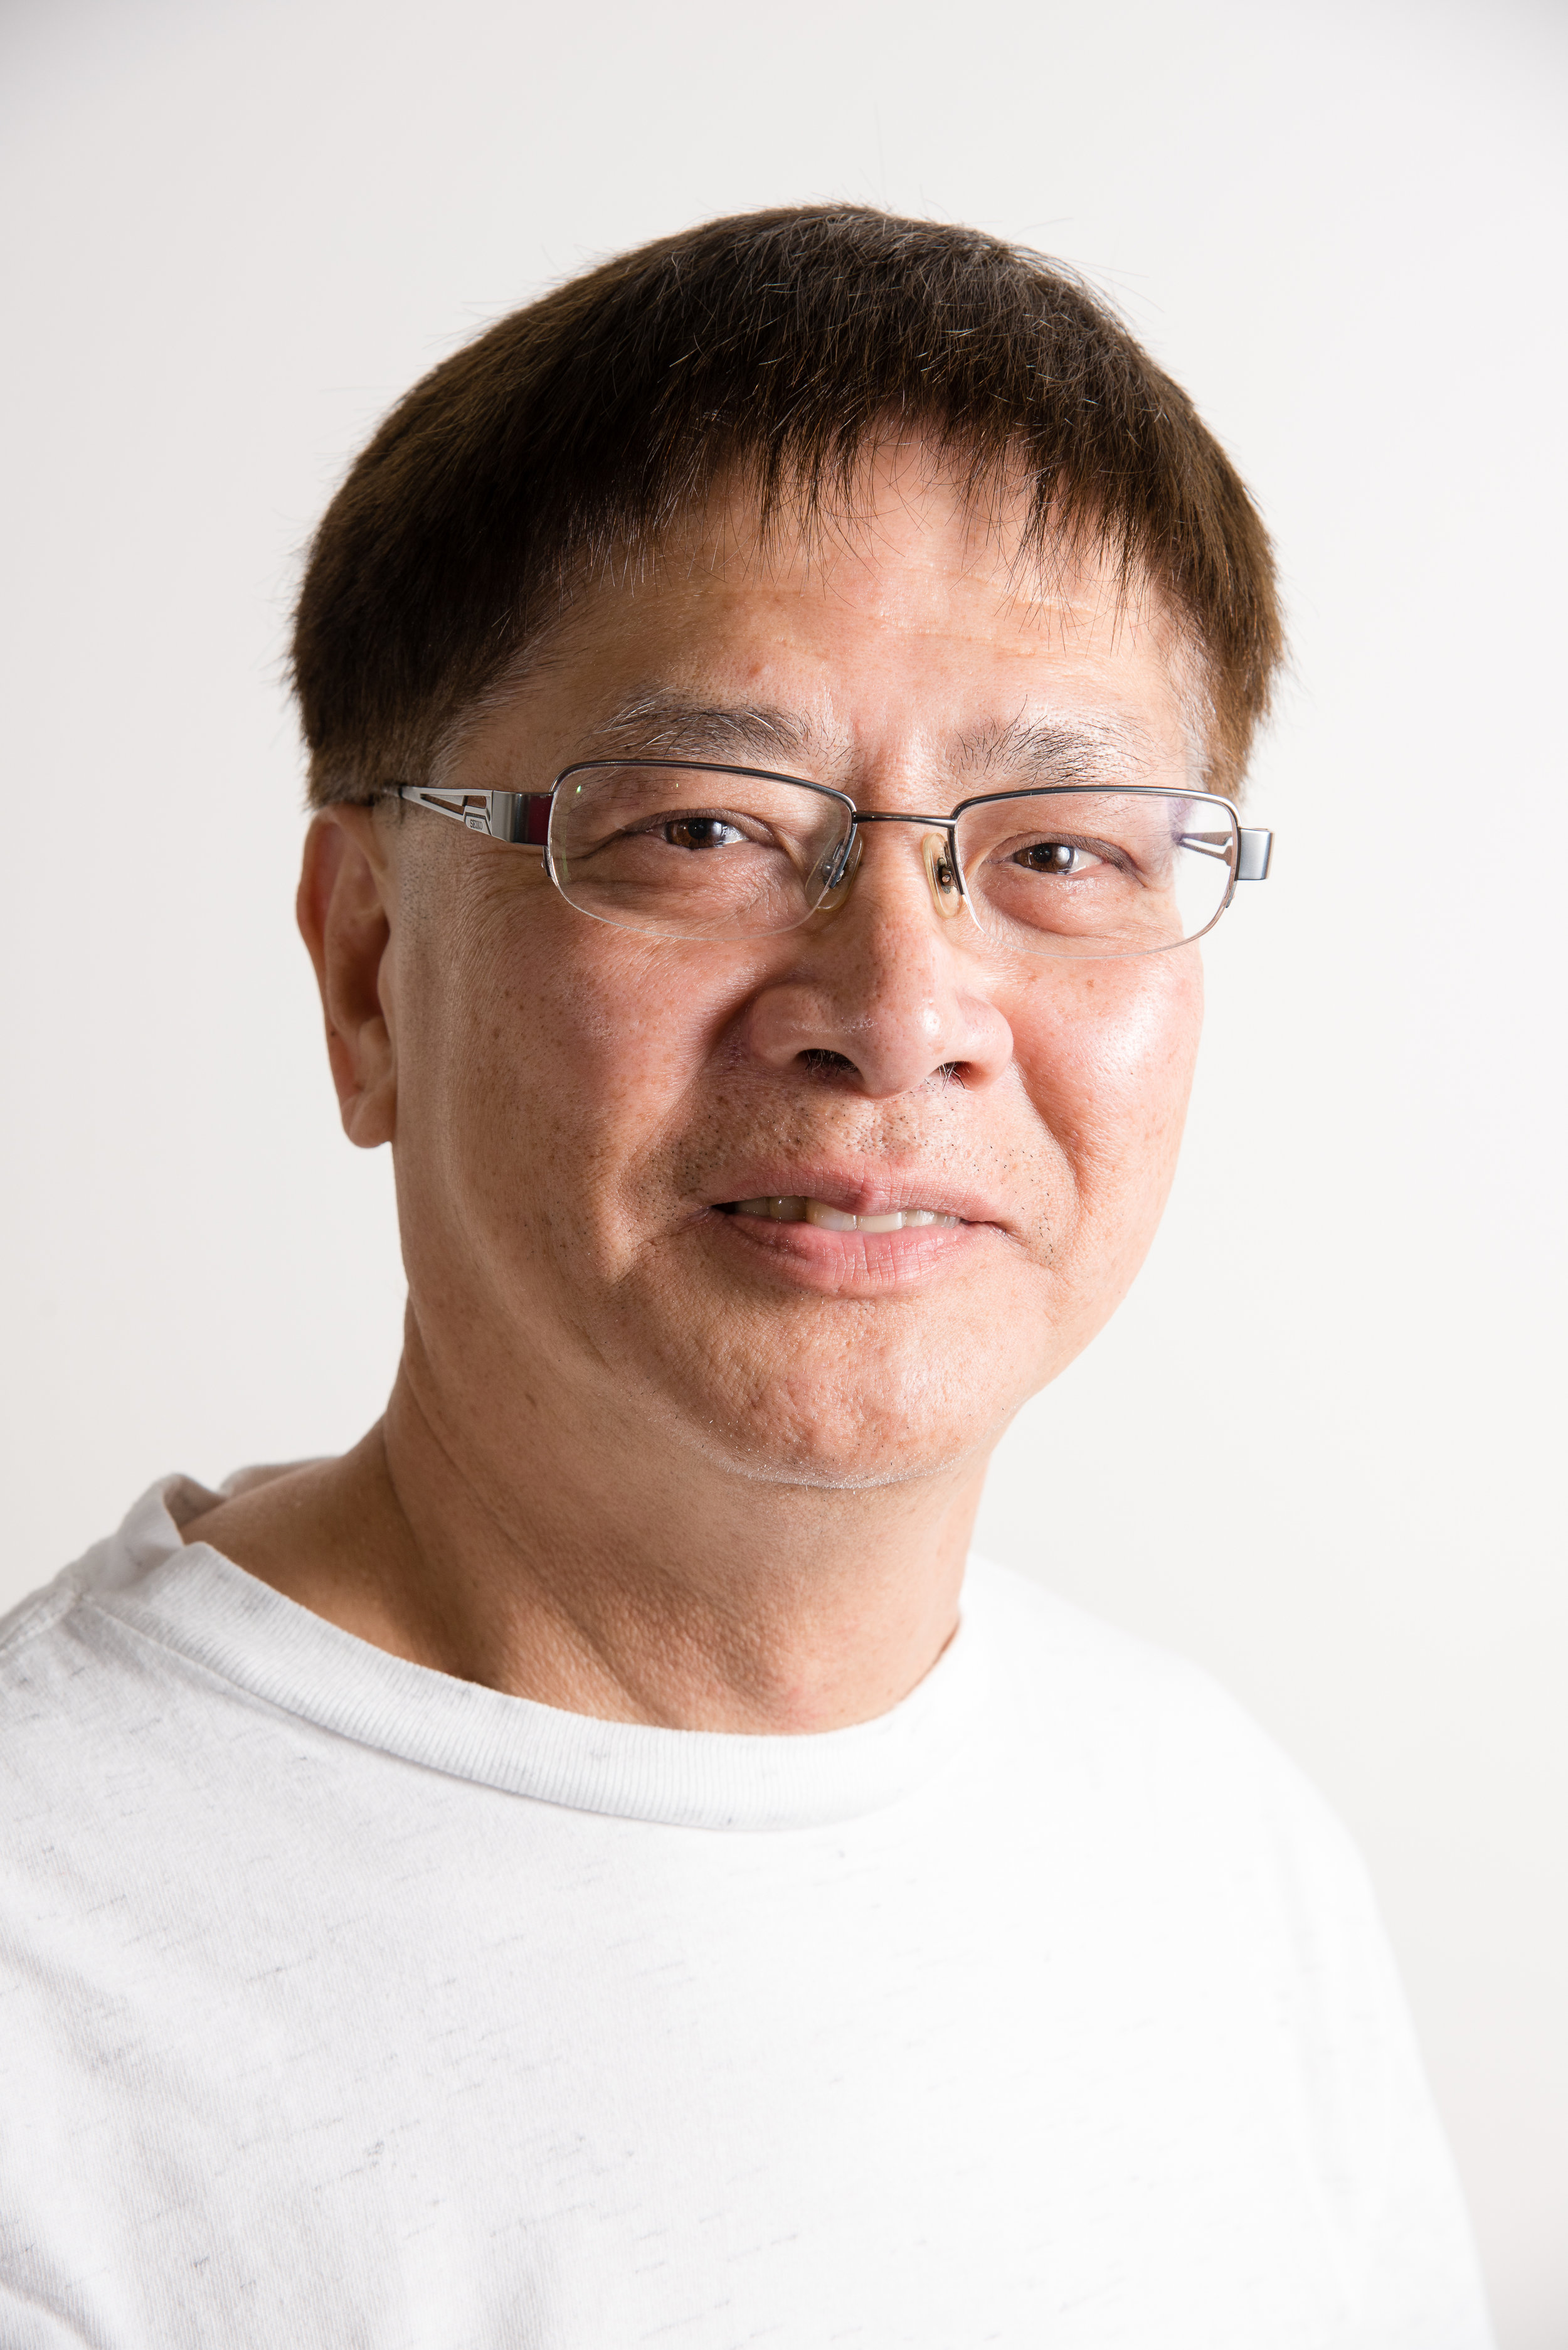 National Advisor - Louis Lee 李杰泉